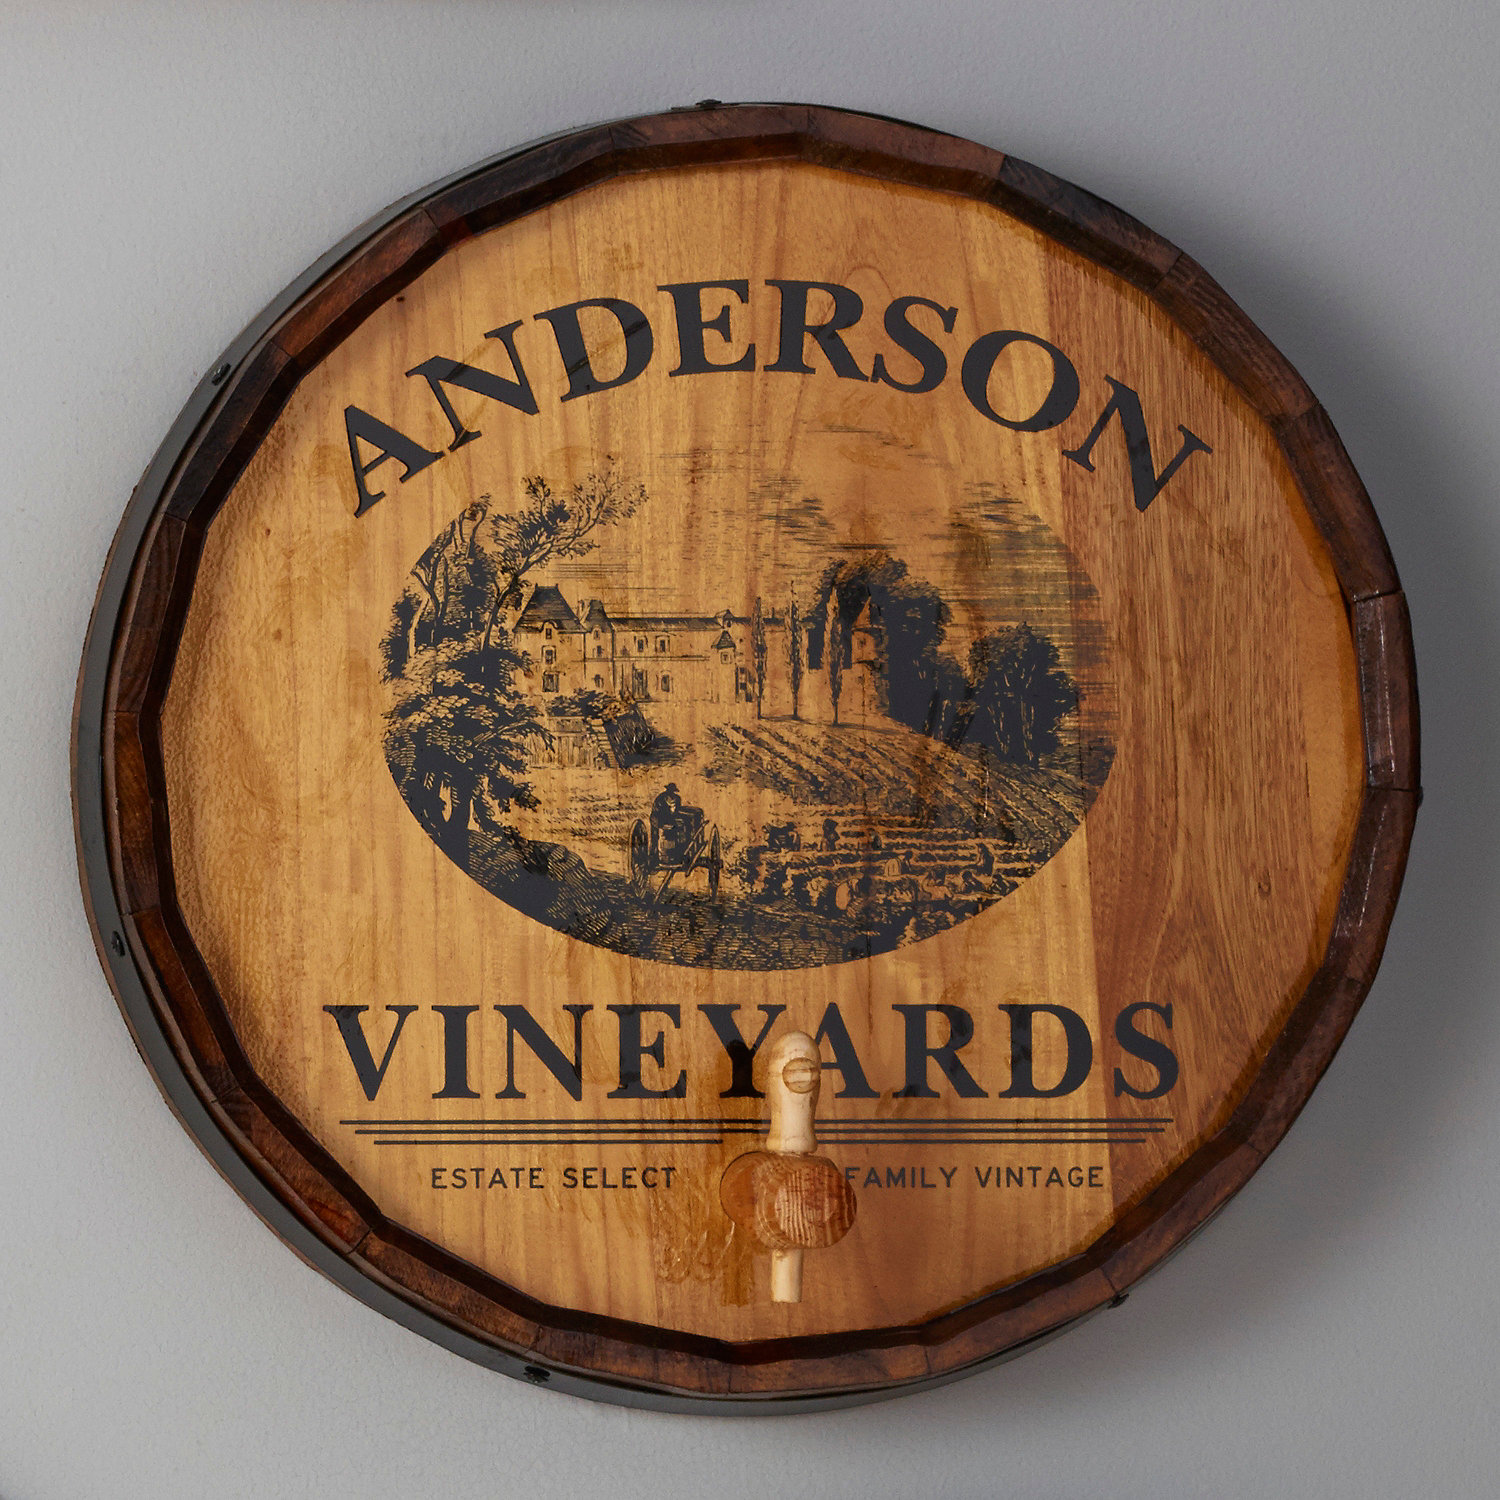 Personalized Quarter Barrel Head Sign with Spigot Vineyard